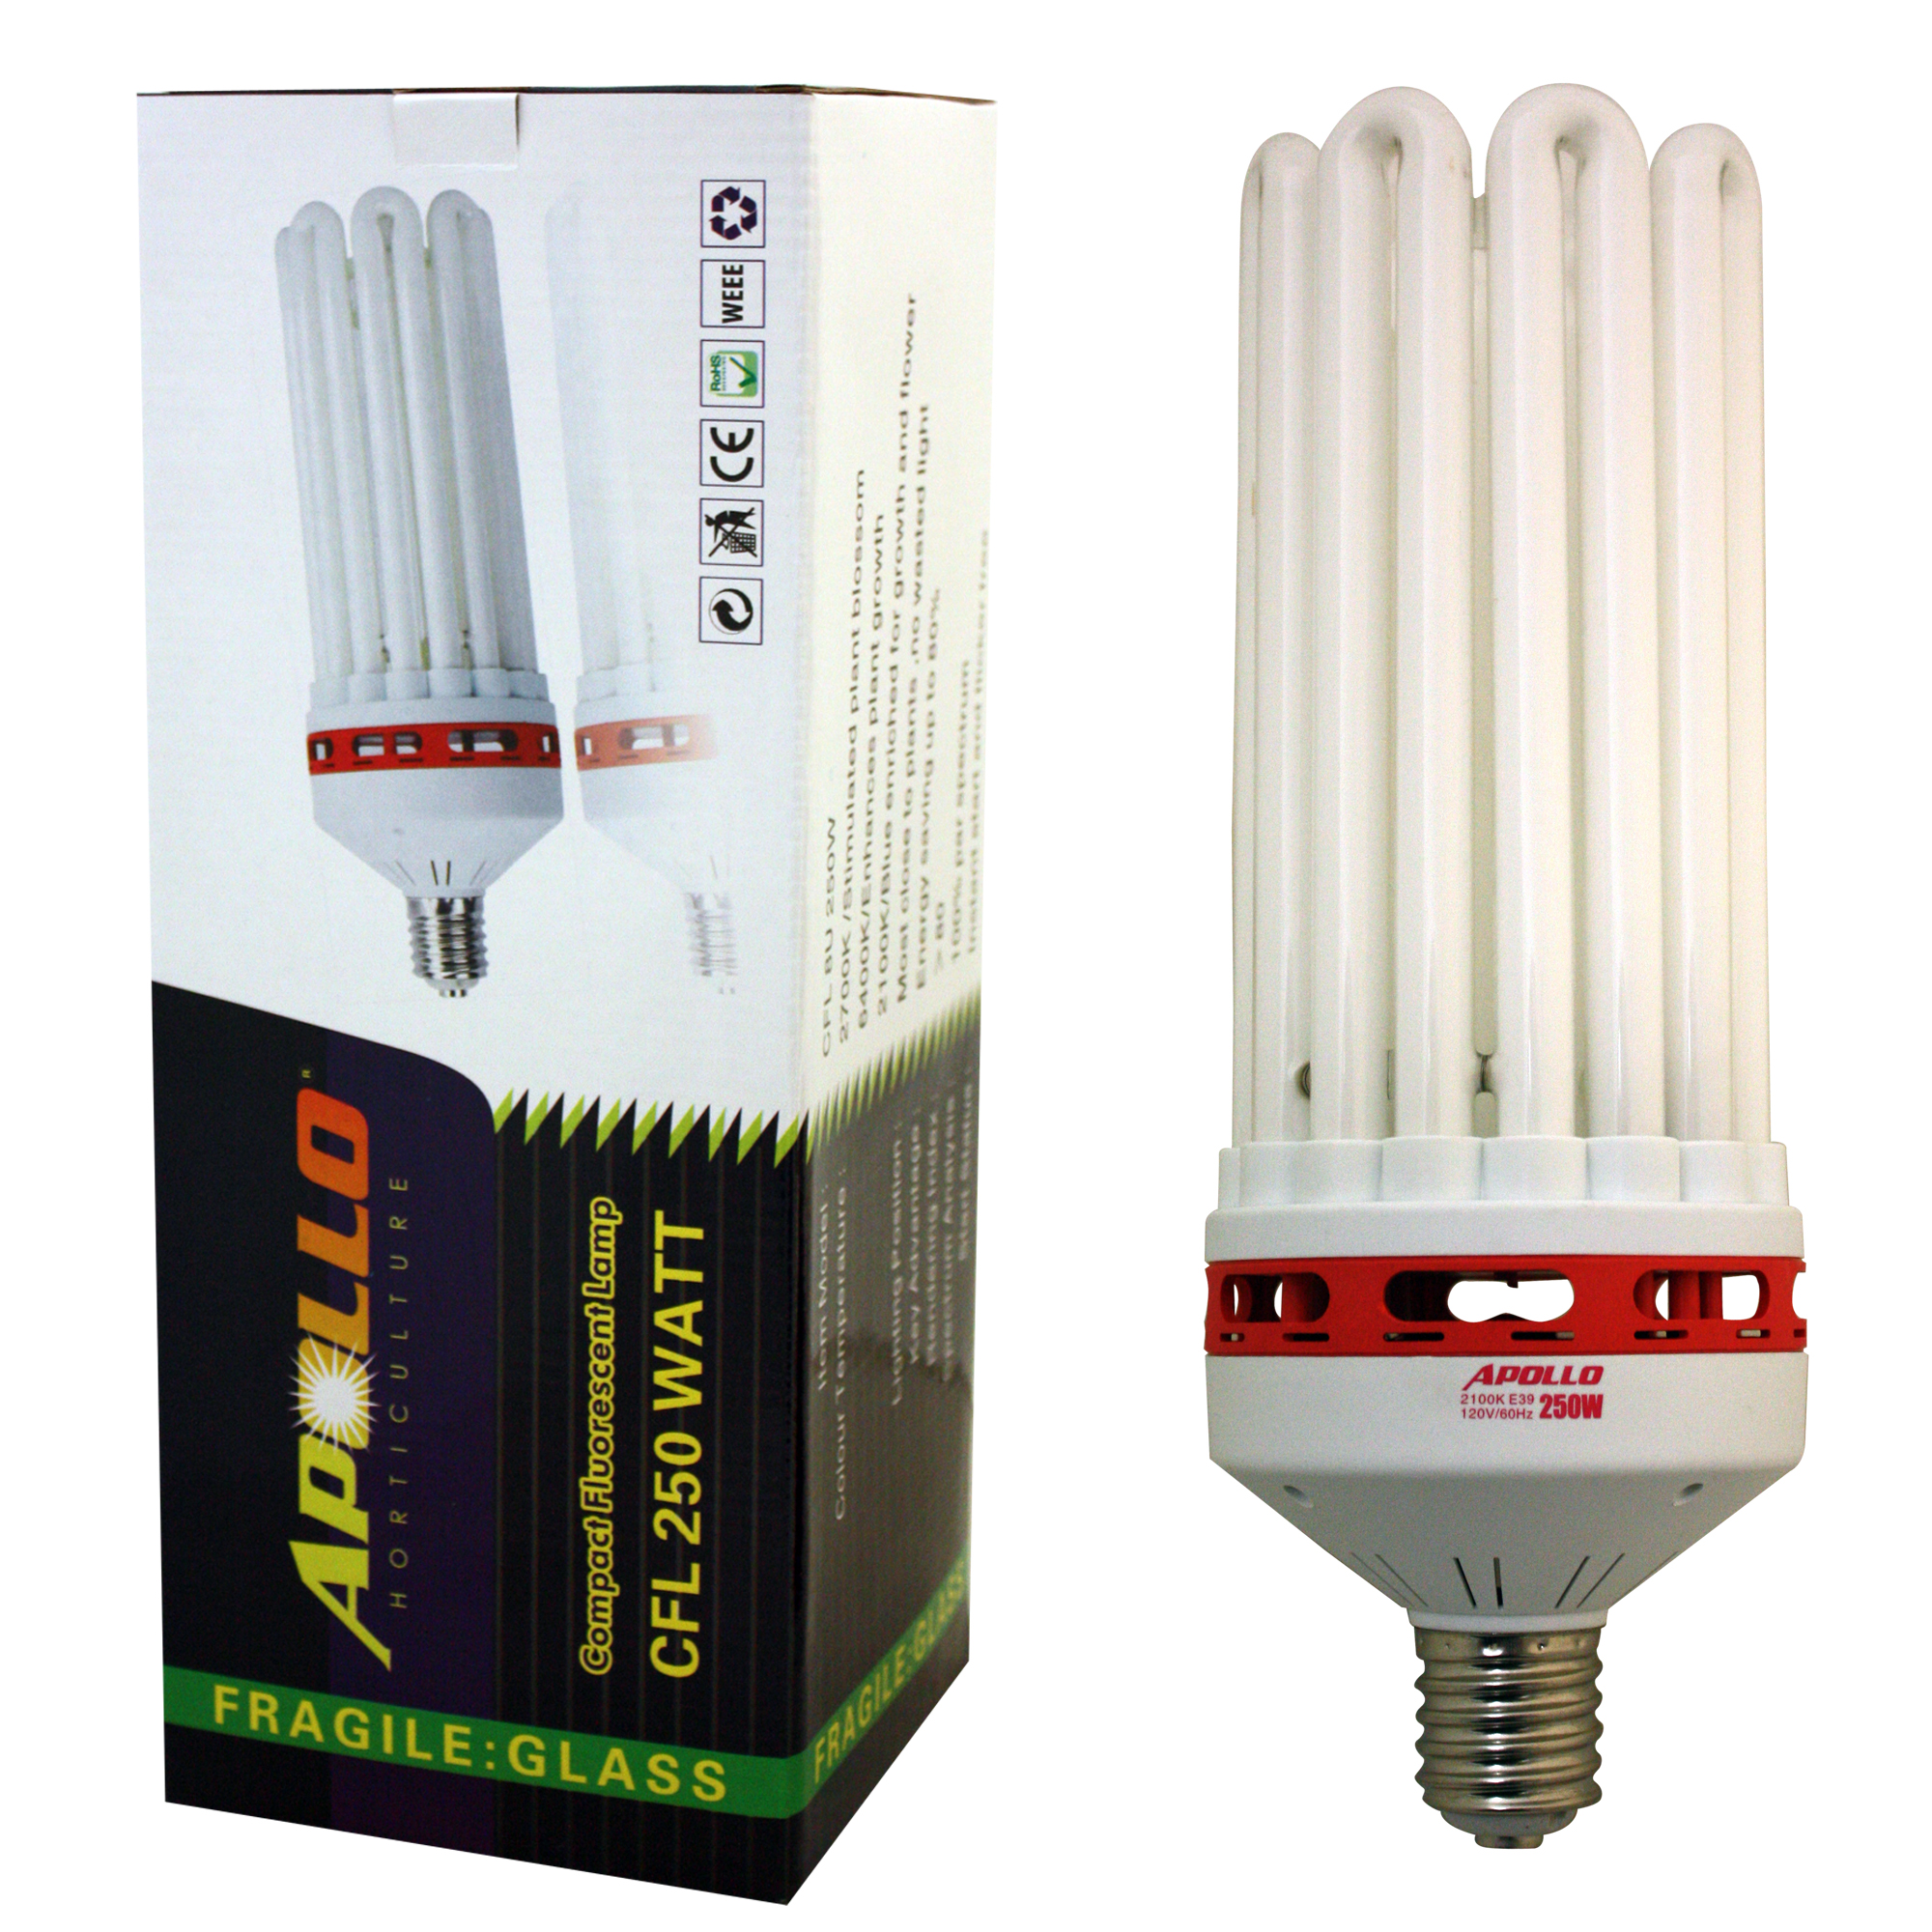 Apollo Horticulture 250 Watt CFL Compact Fluorescent Grow Light Bulb of 6400K for Plant Growing